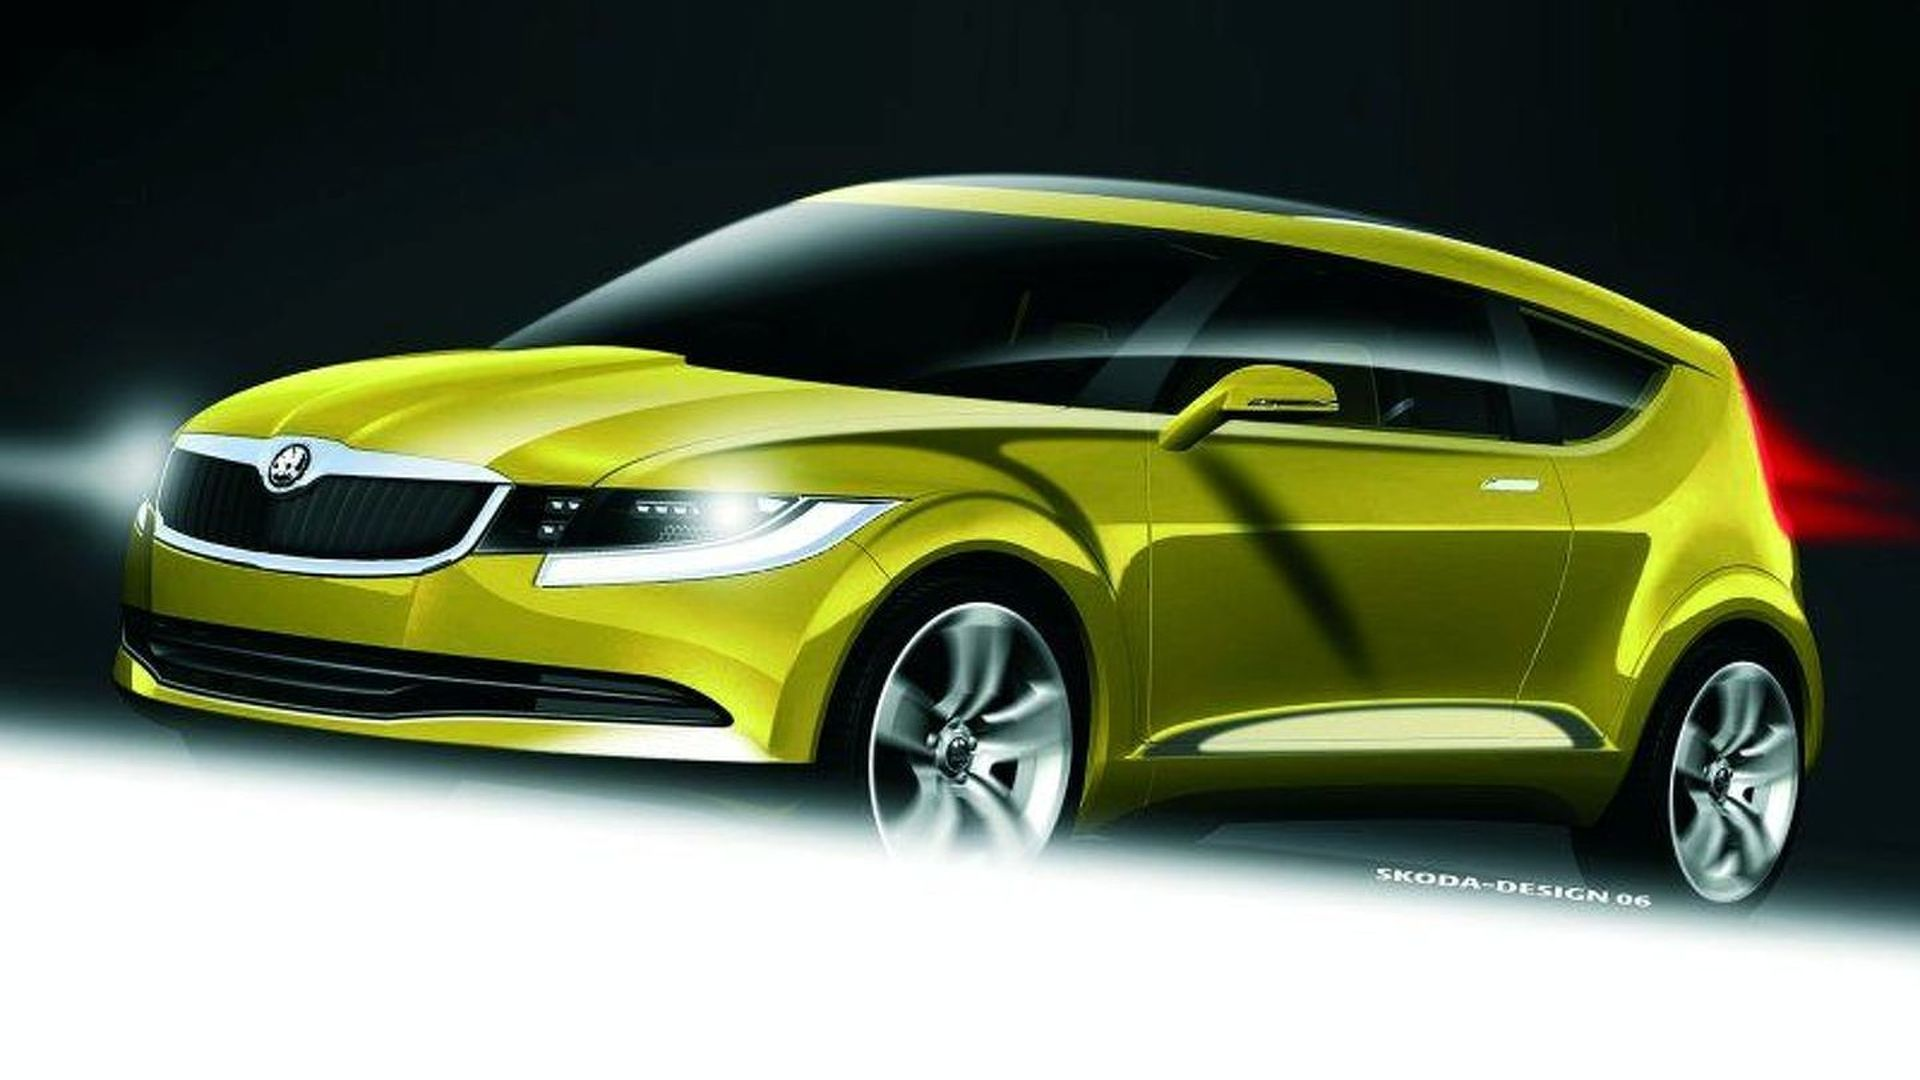 skoda coupe suv due in 2017. Black Bedroom Furniture Sets. Home Design Ideas